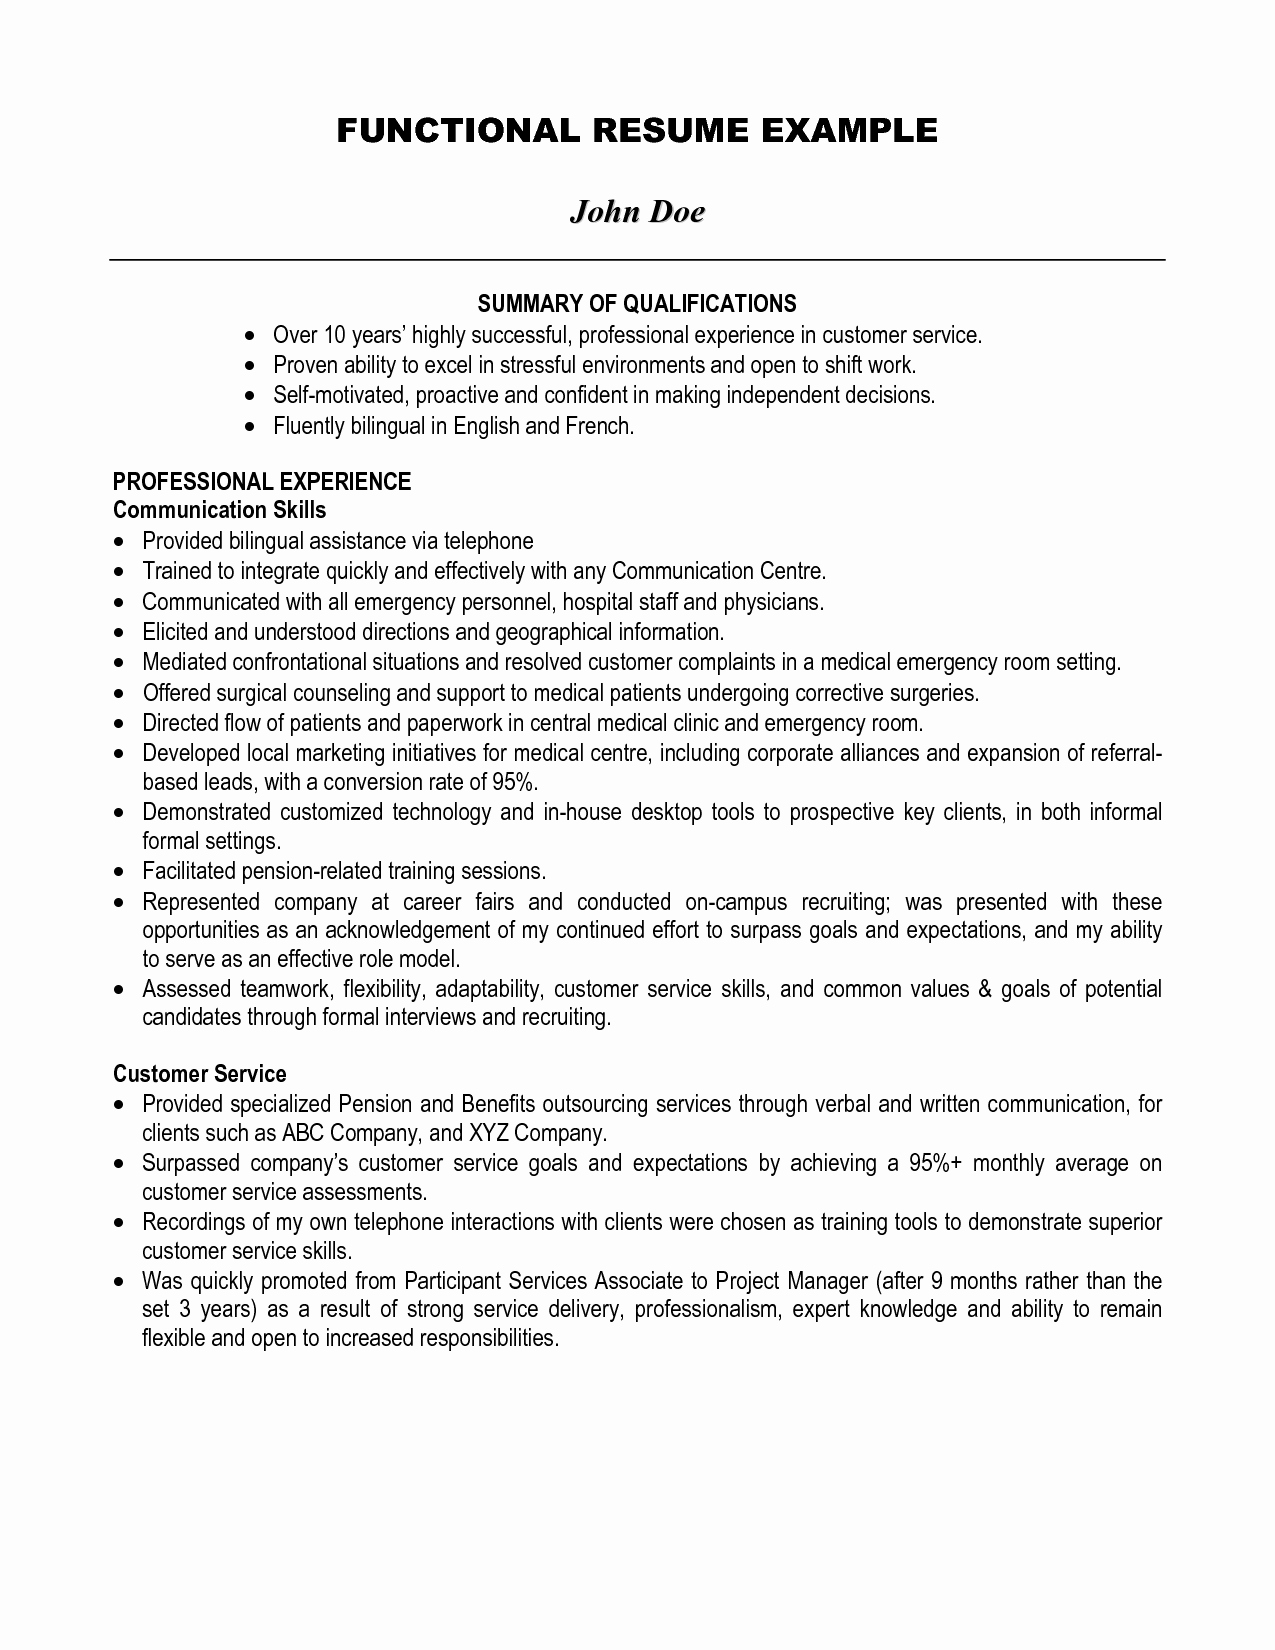 Sample Statement Of Qualification Fresh Best Summary Of Qualifications Resume for 2016